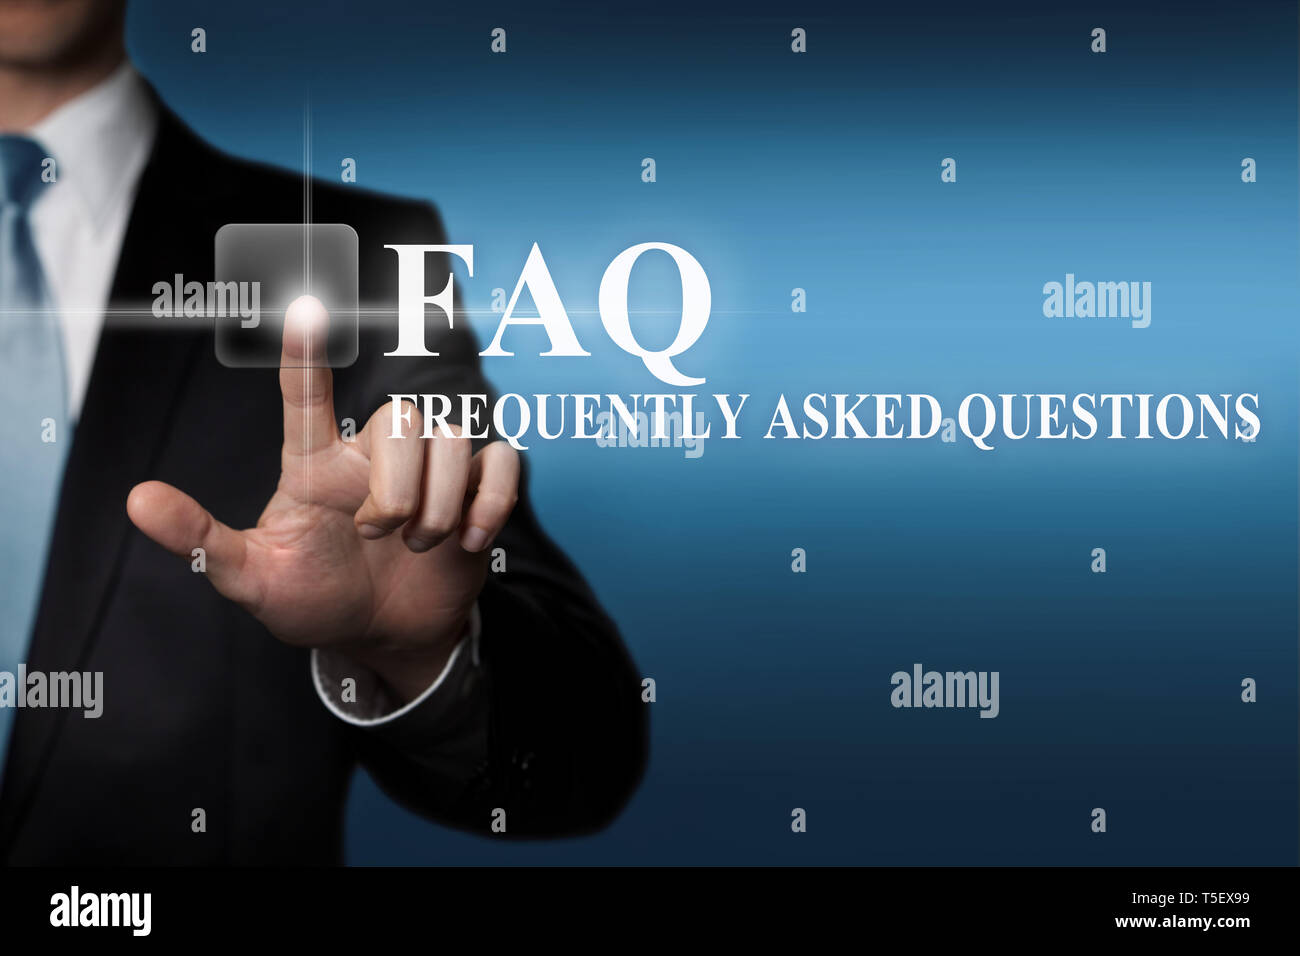 businessman presses virtual touch screen button - FAQ Frequently Asked Questions Stock Photo